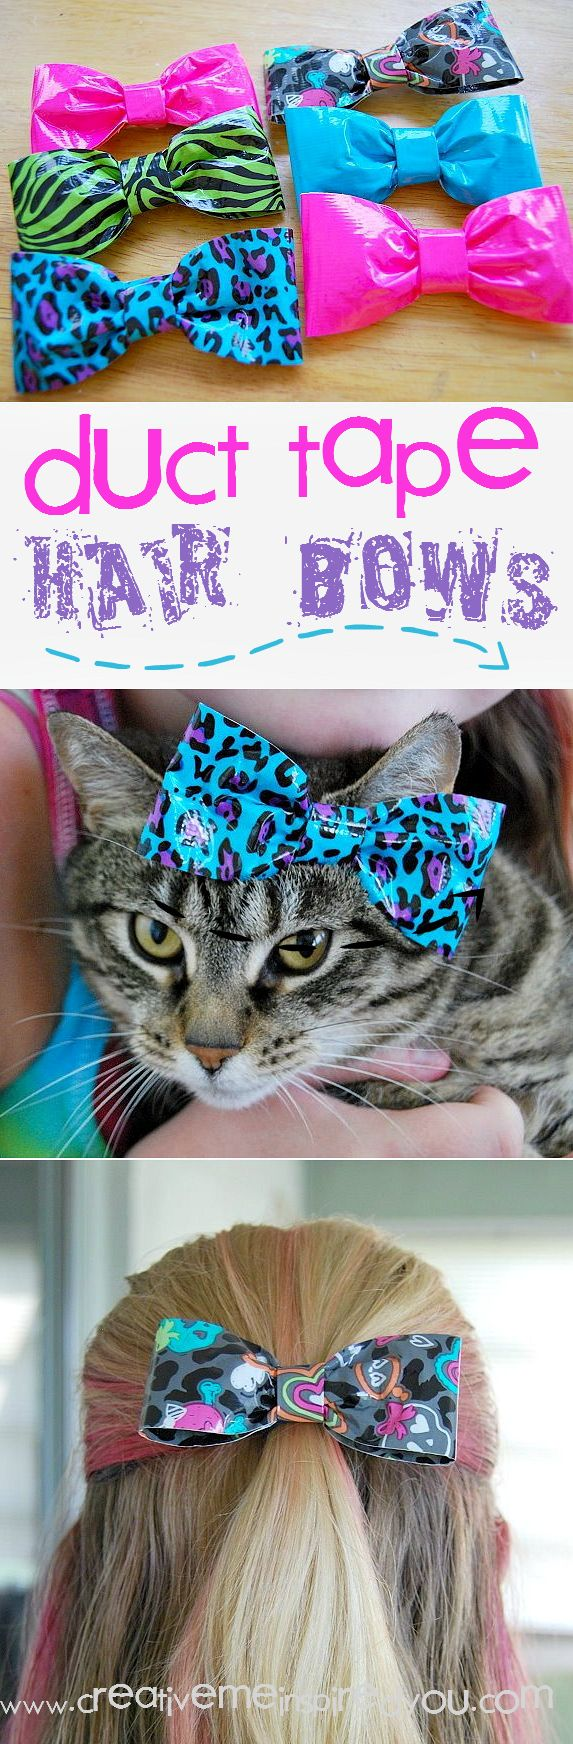 http://creativemeinspiredyou.com/duct-tape-hair-bows/ What a fun fashion craft for the kids to make, we could do this for a sleepover craft!